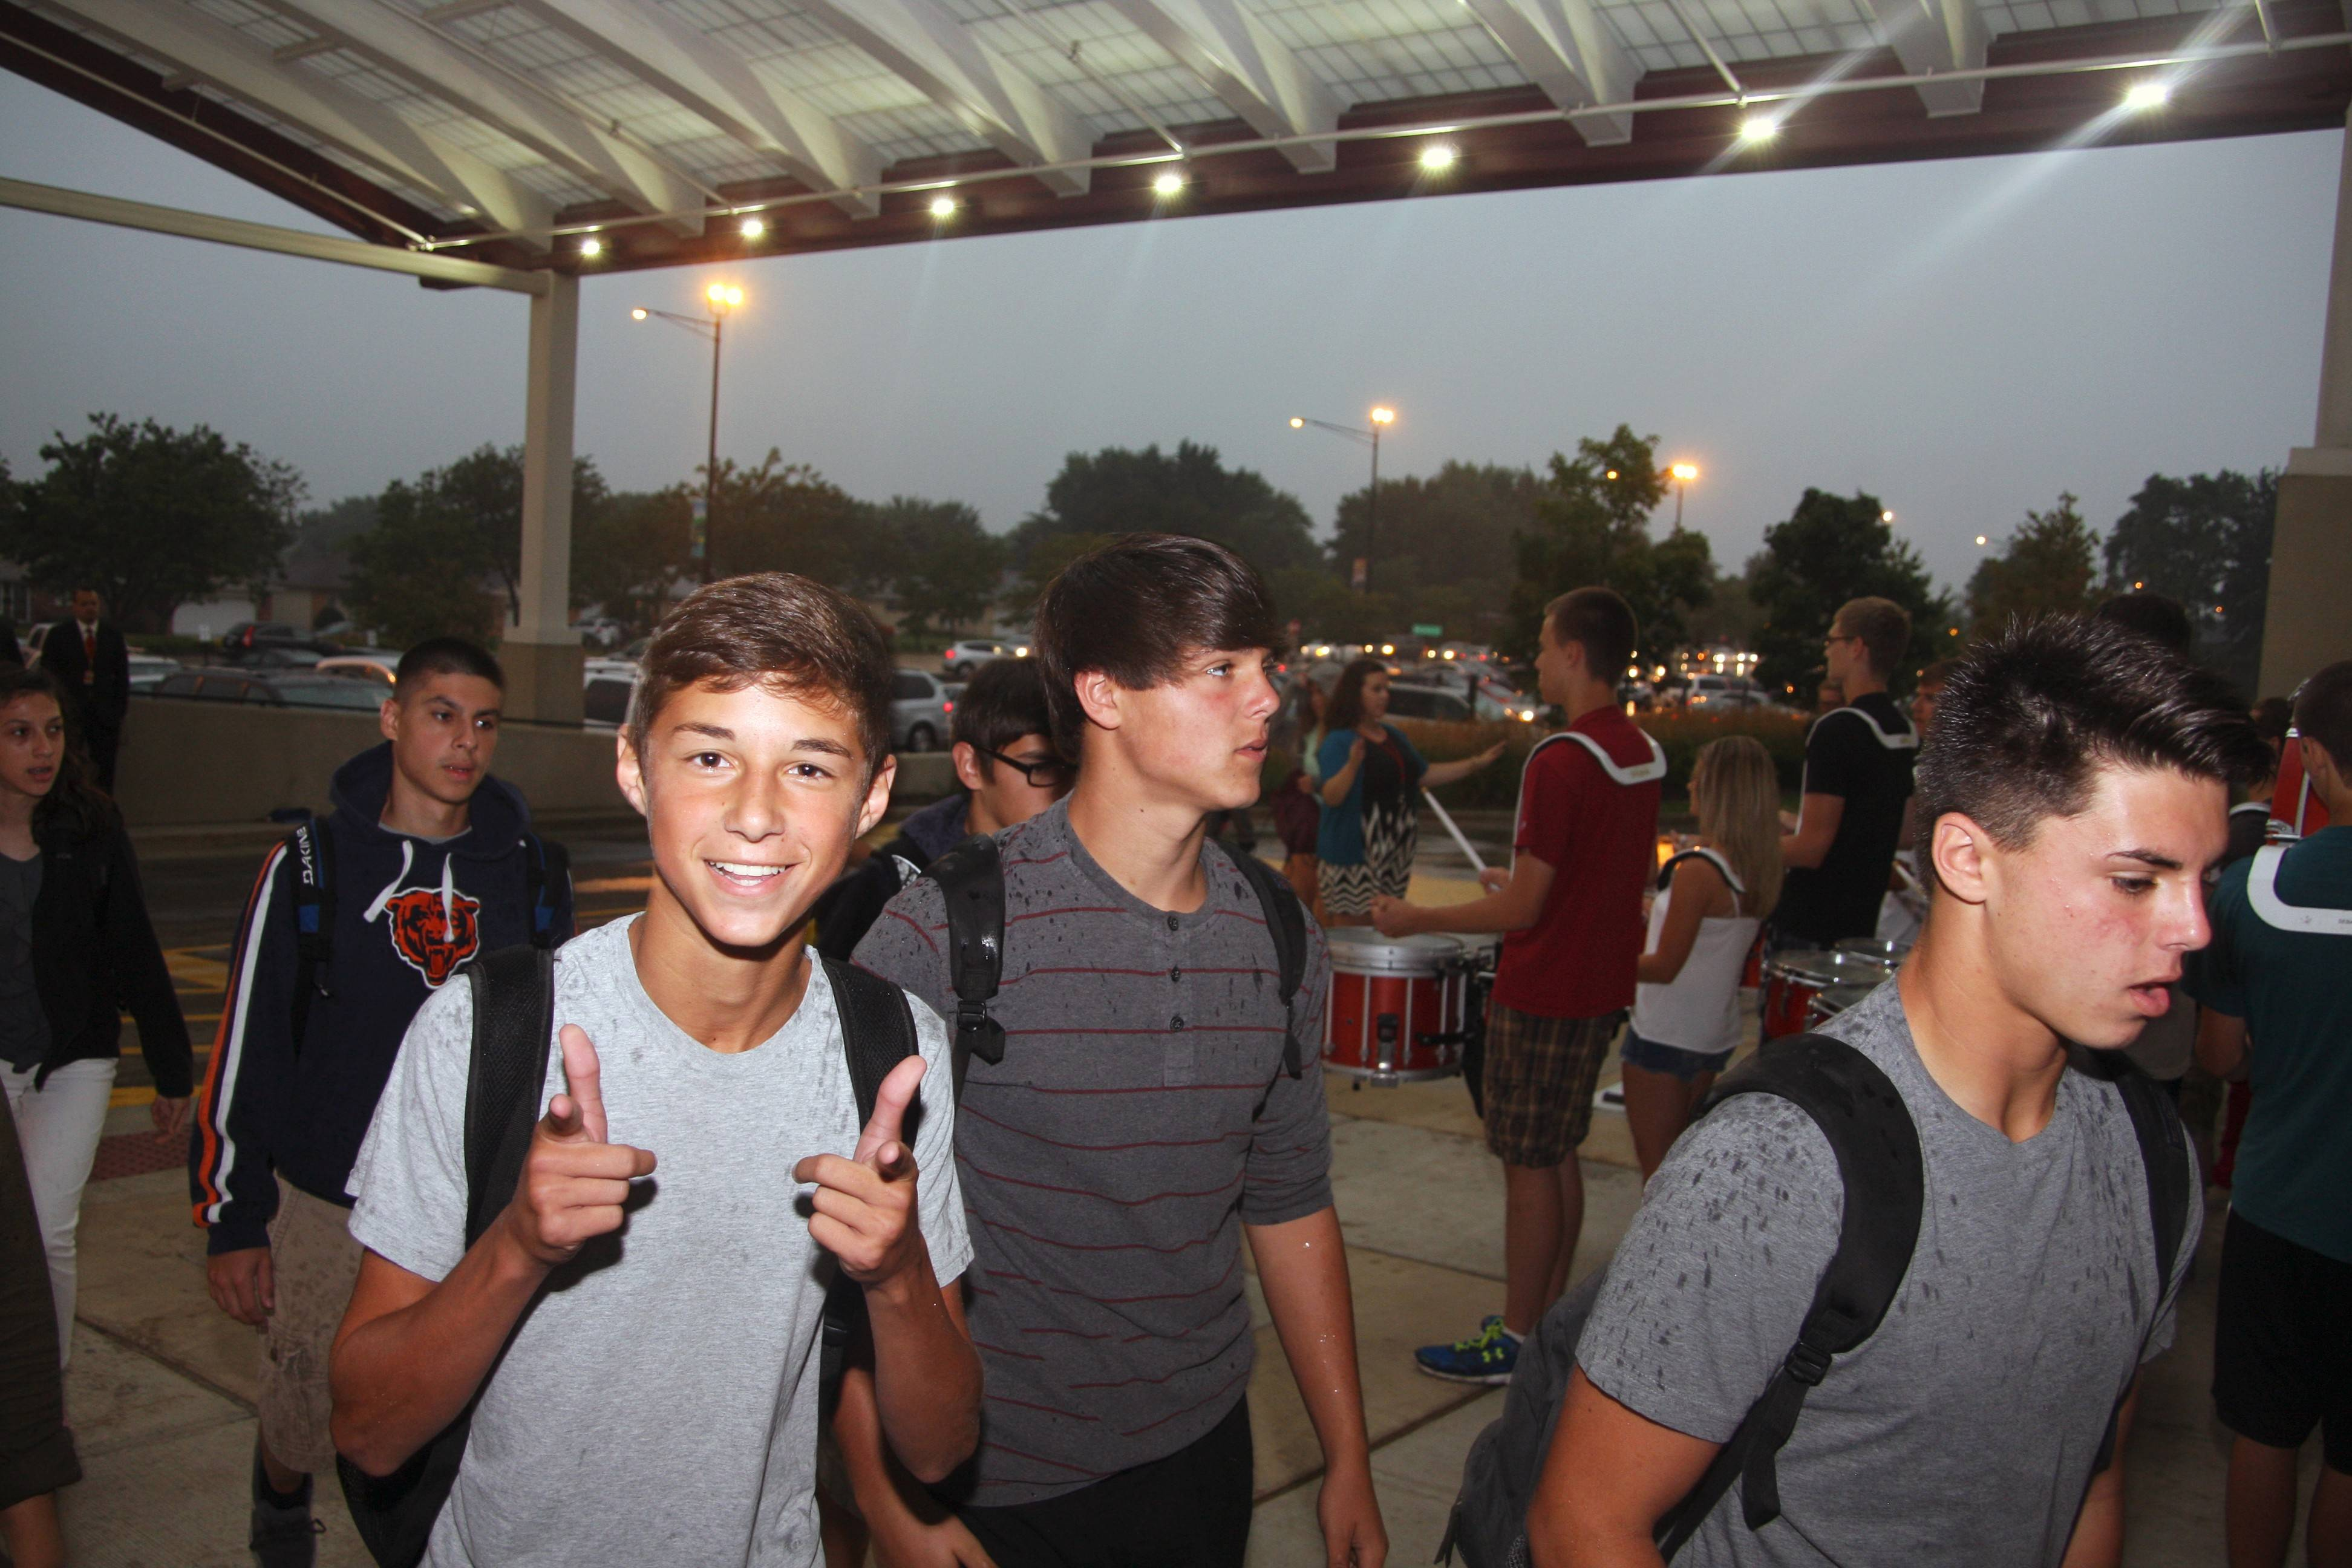 Schaumburg High School freshman Alec Greenhold started the new school year with two thumbs up as he enters next to sophomores Michael and Austin Anzelmo.